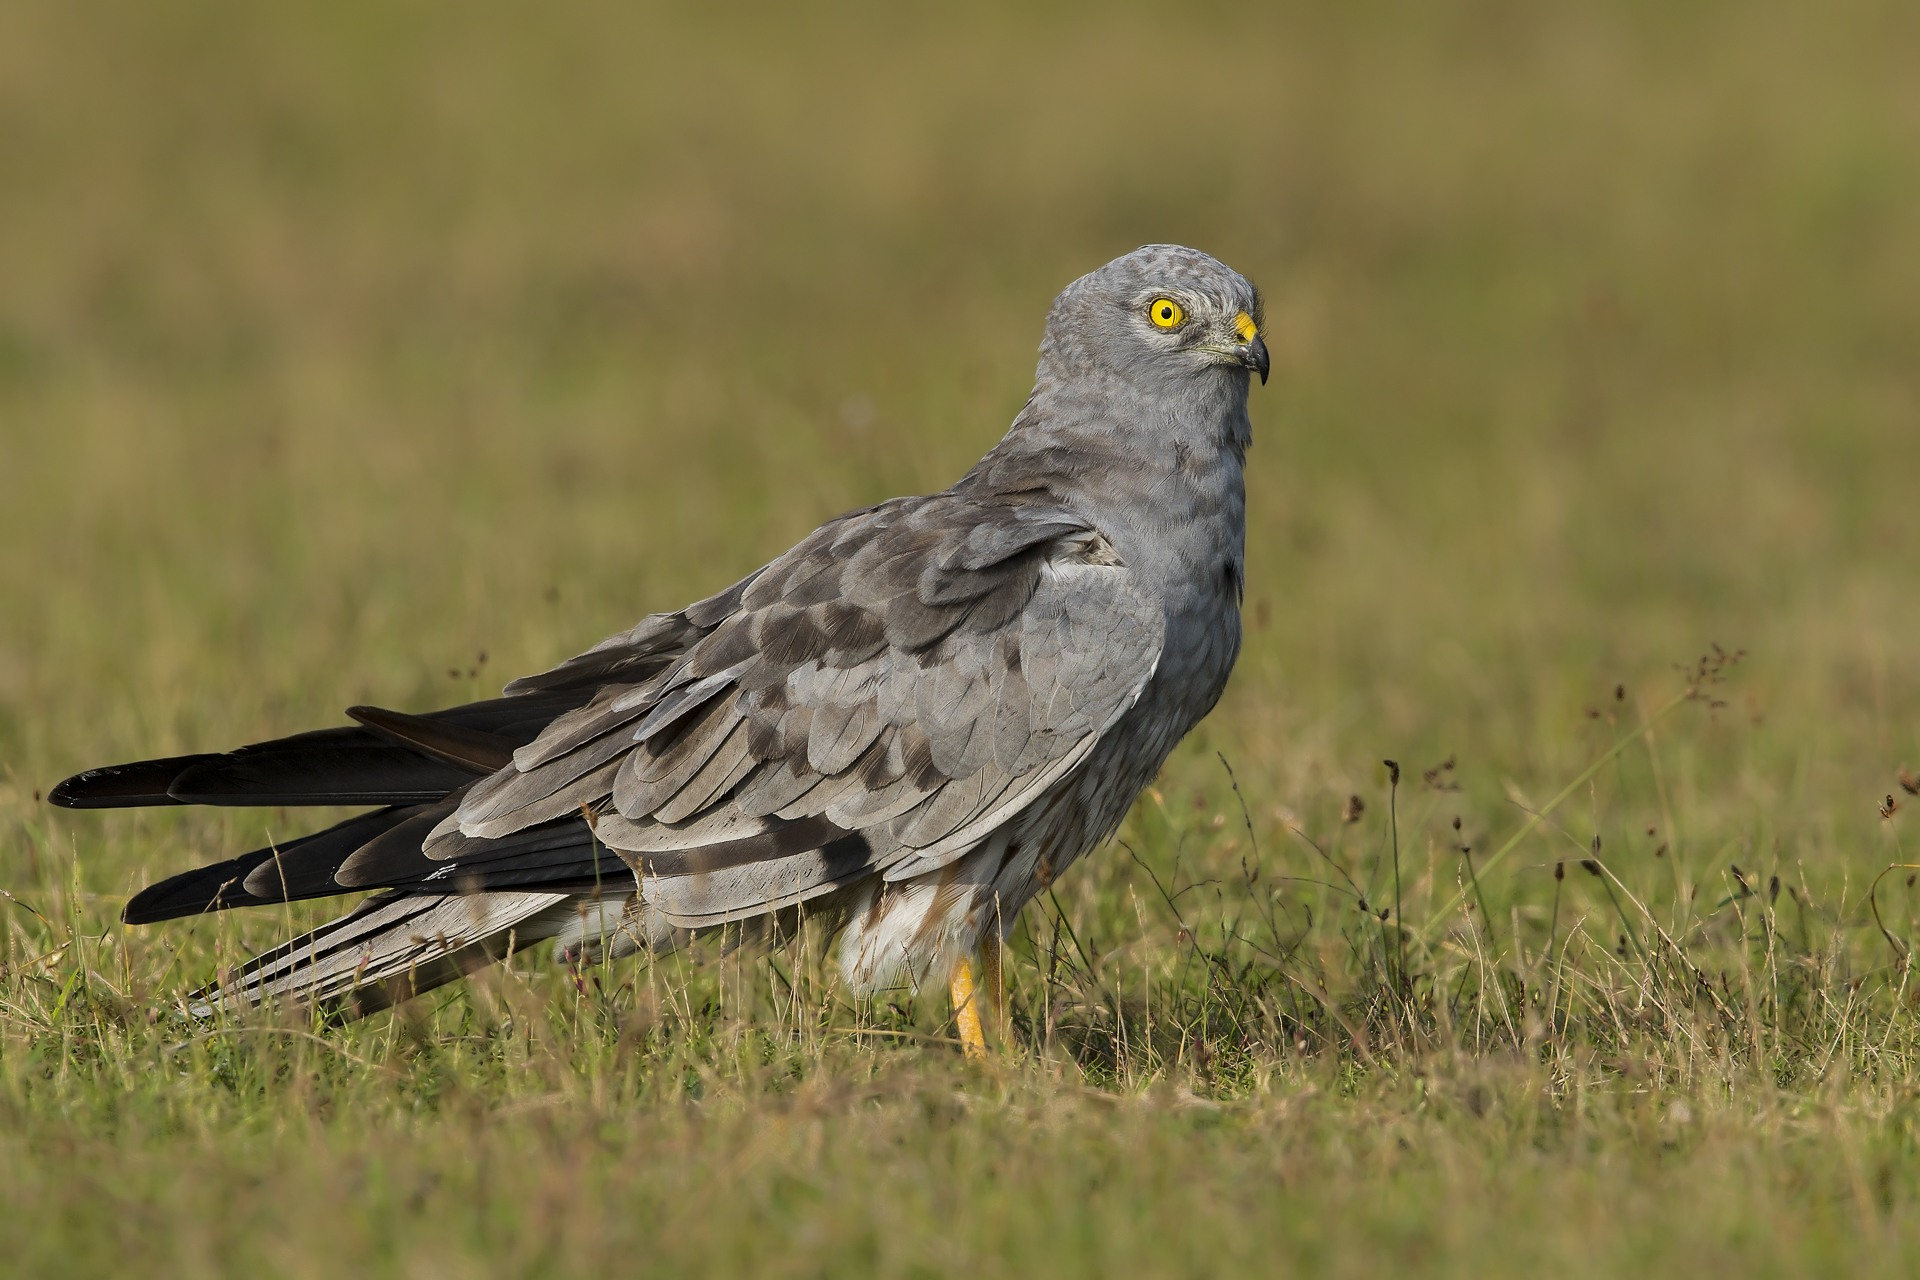 The adult male sports a stunning grey plumage with black-edged wings. It has brown streaks on its underside which helps to differentiate it from the male pallid harrier. Photo: Sambath Subbaiah